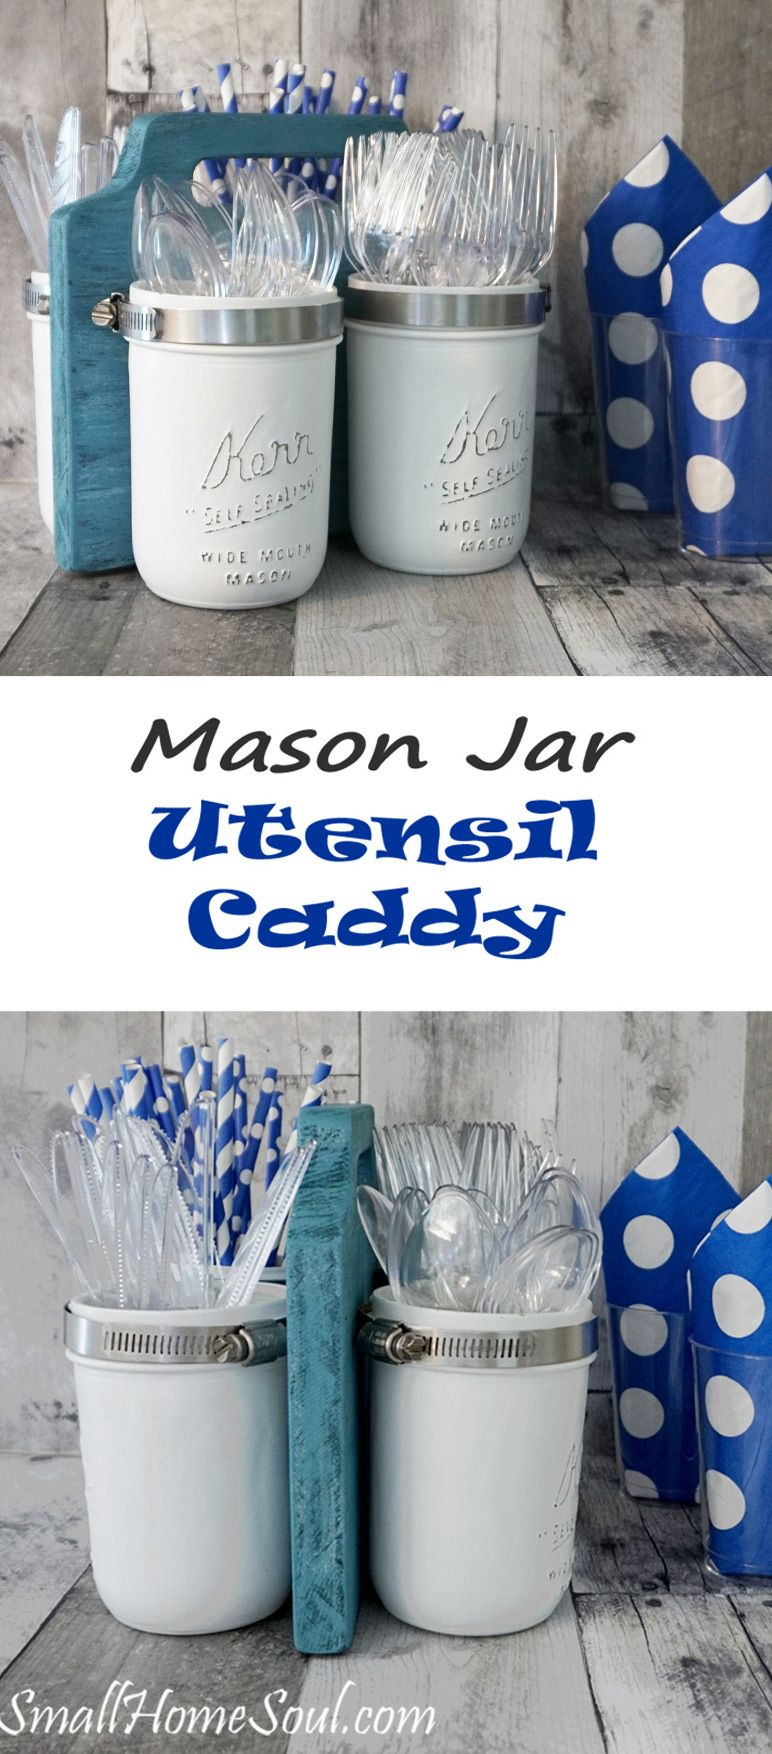 This awesome Mason Jar Utensil Caddy is perfect for a big BBQ or a…